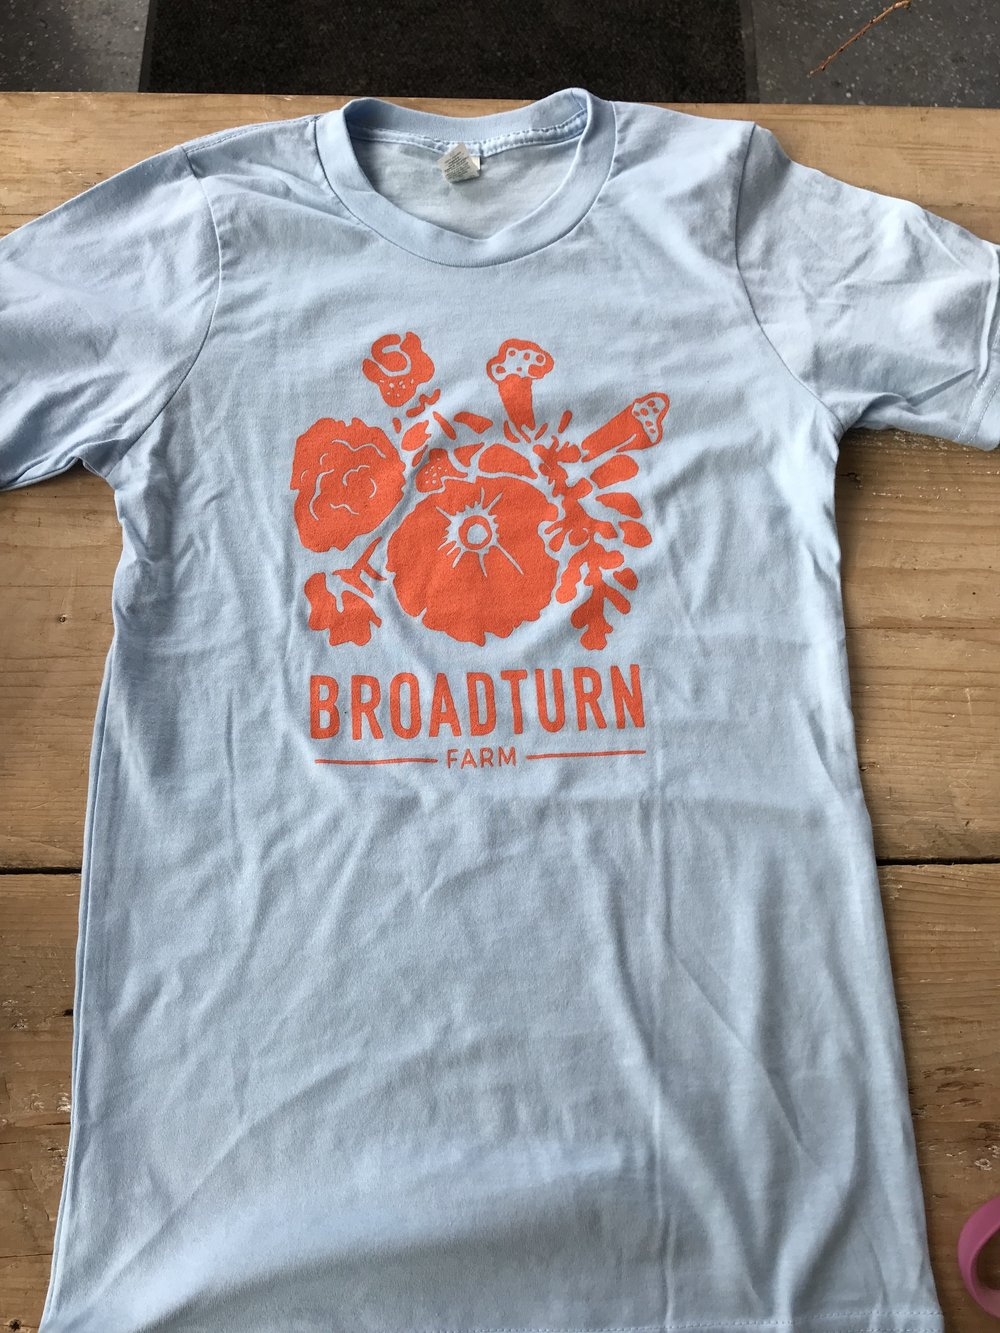 Broadturn Farm T-Shirt: Light Blue